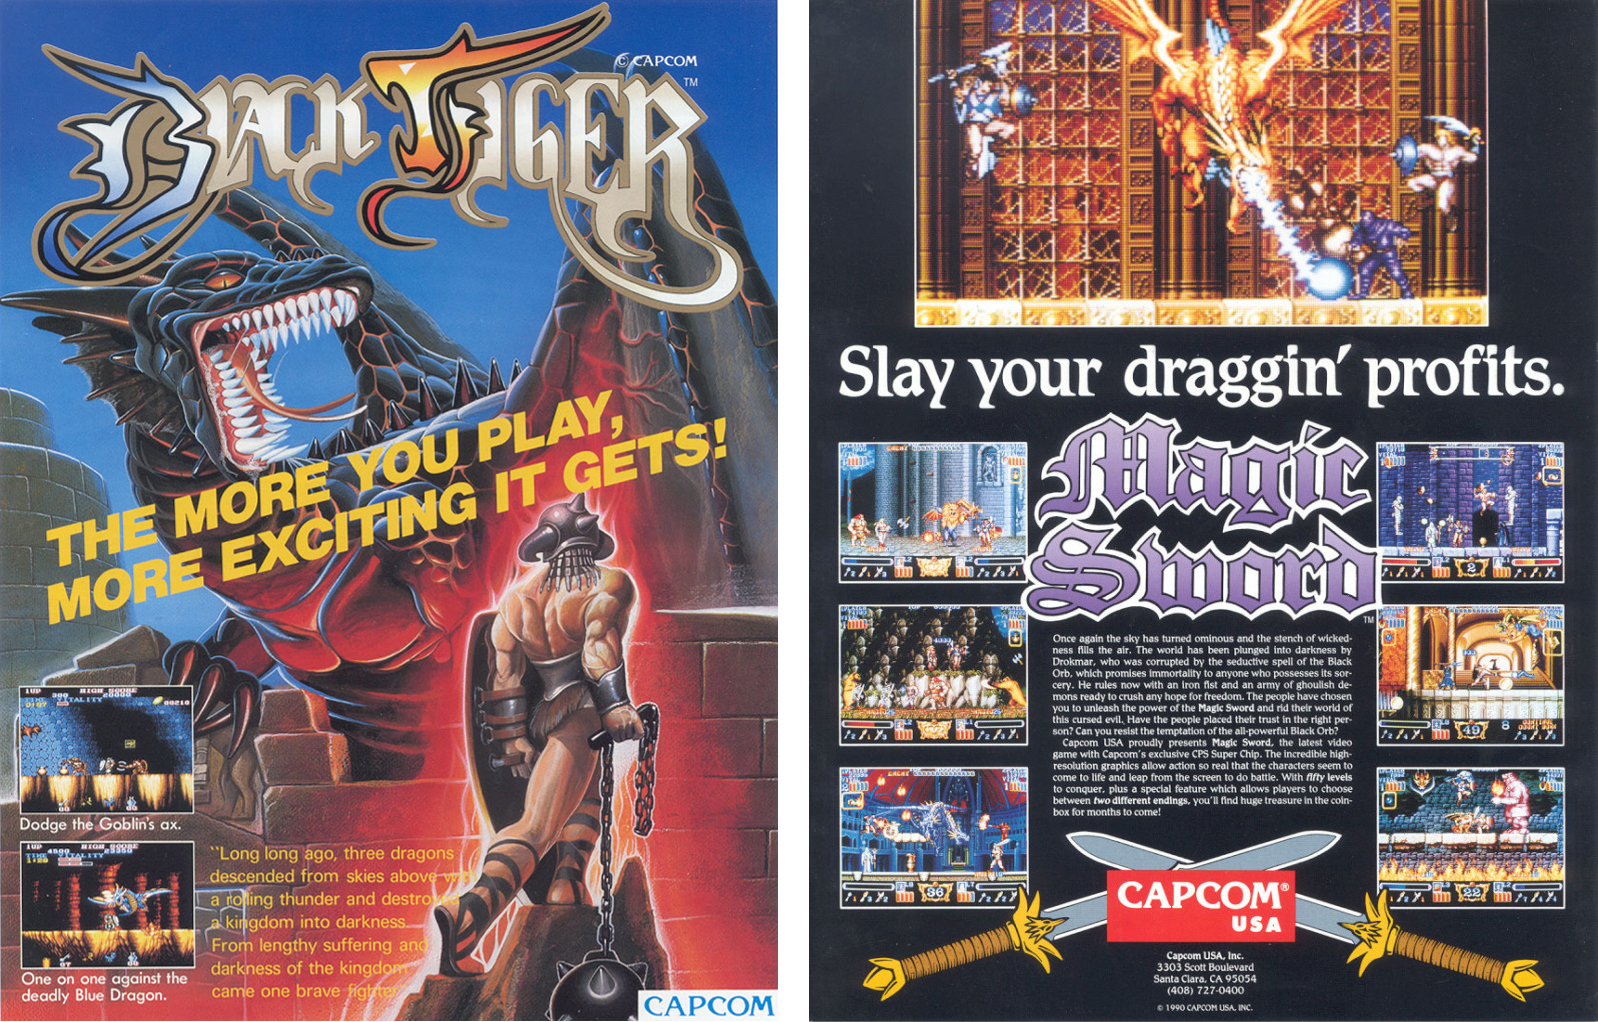 black-tiger-es-magic-sword-arcade-flyer-.jpg